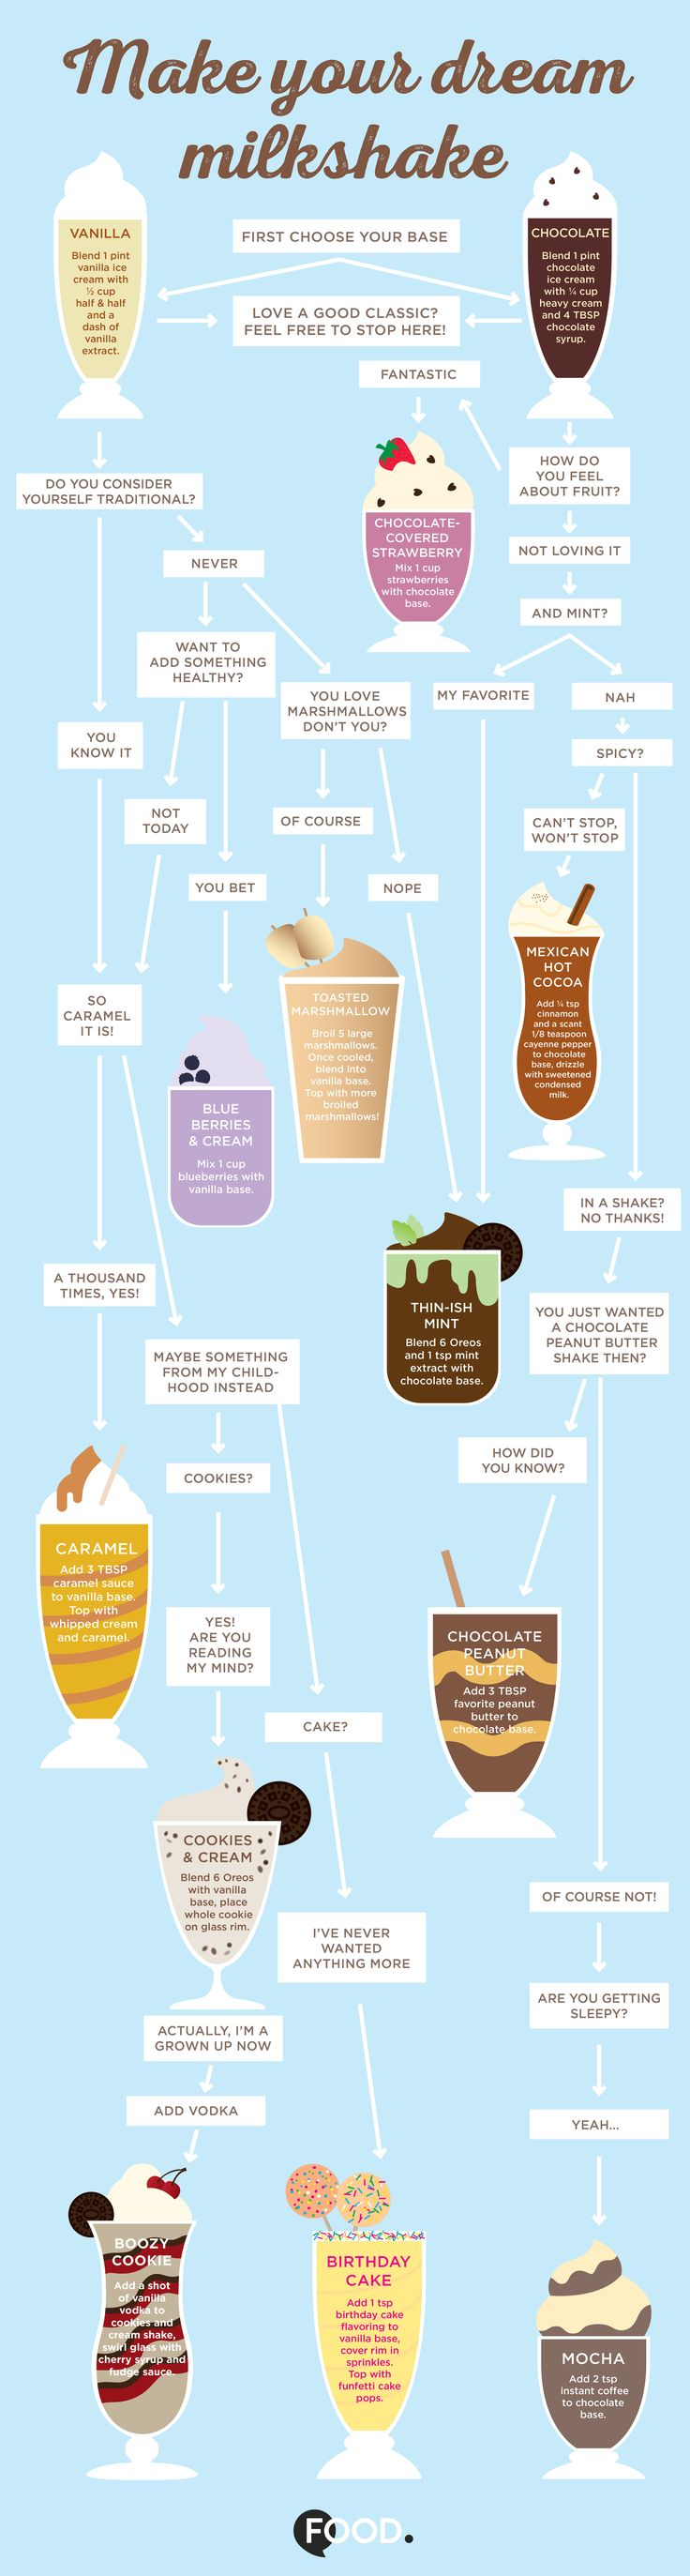 Find the best milkshakes for your mood with this handy infographic from Food.com